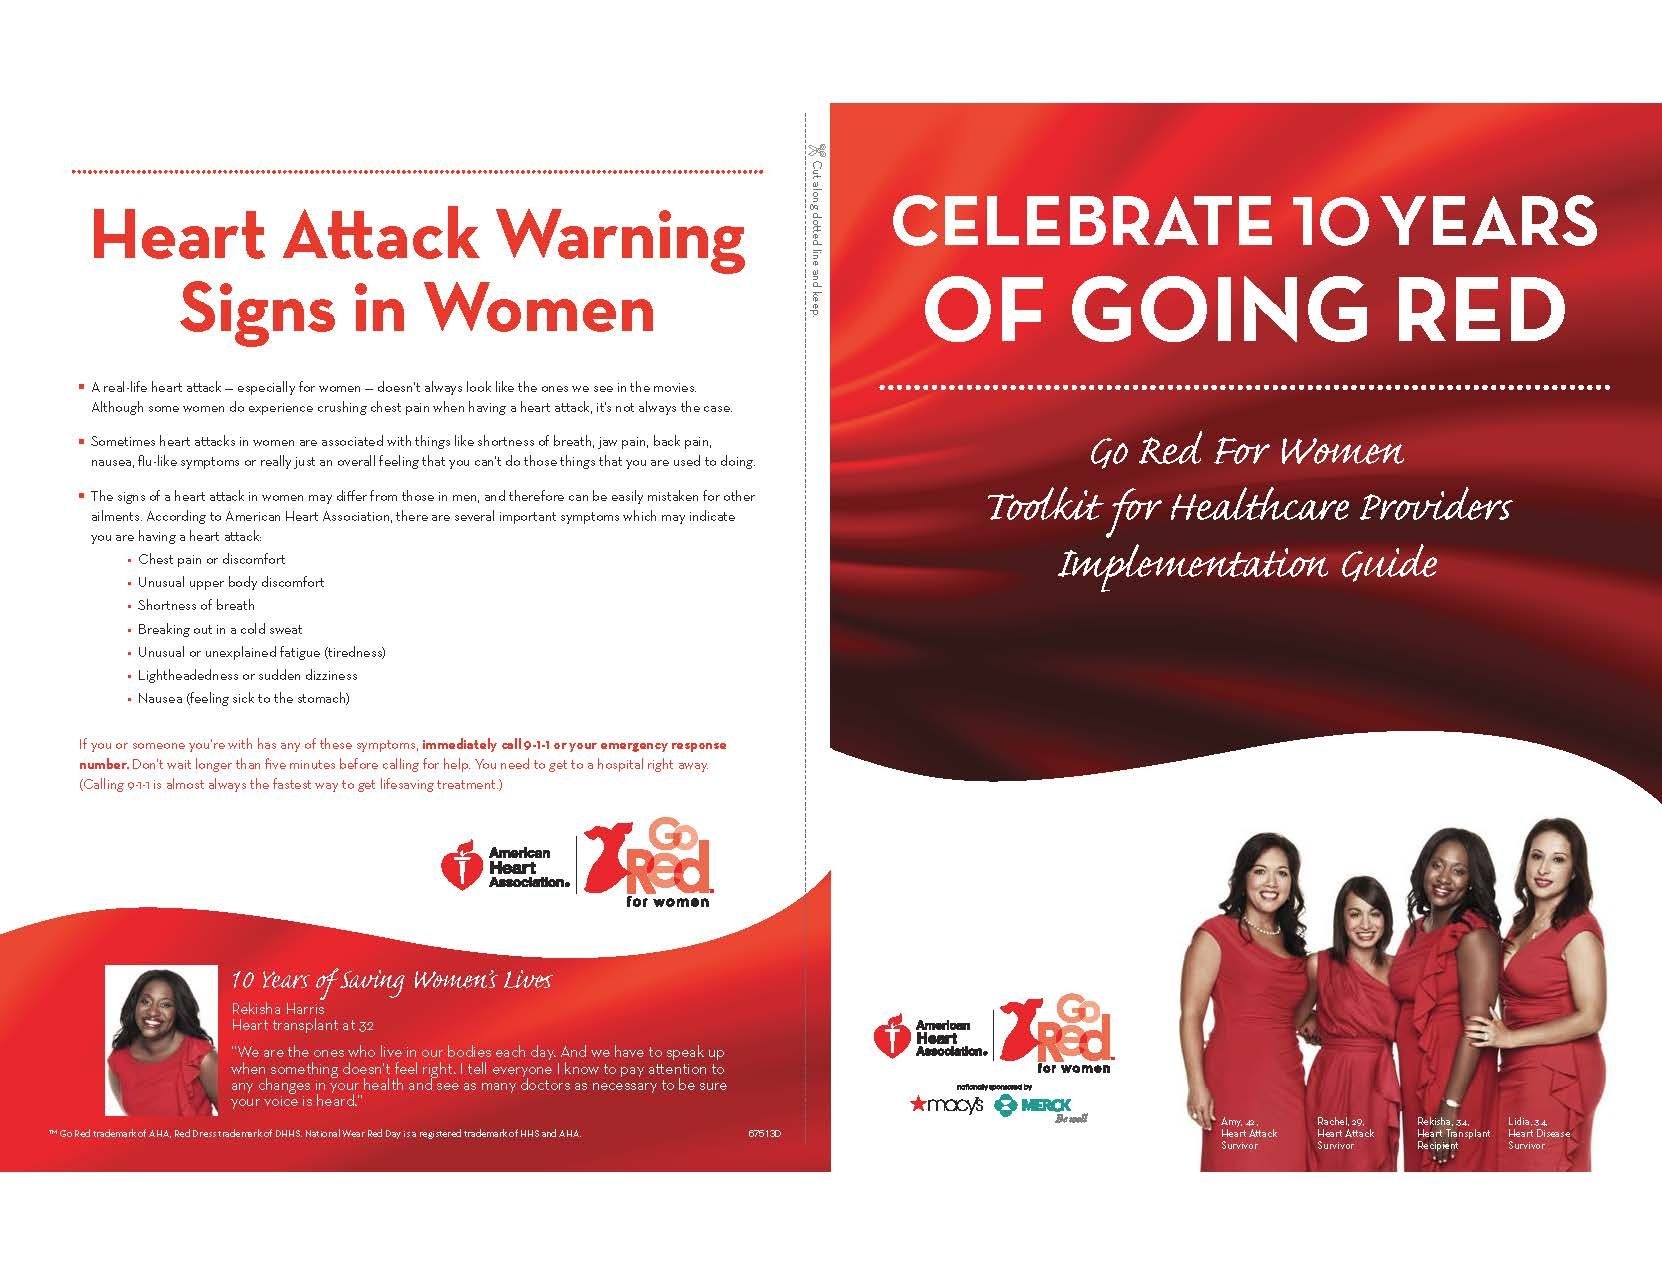 Go Red For Women Toolkit For Healthcare Providers